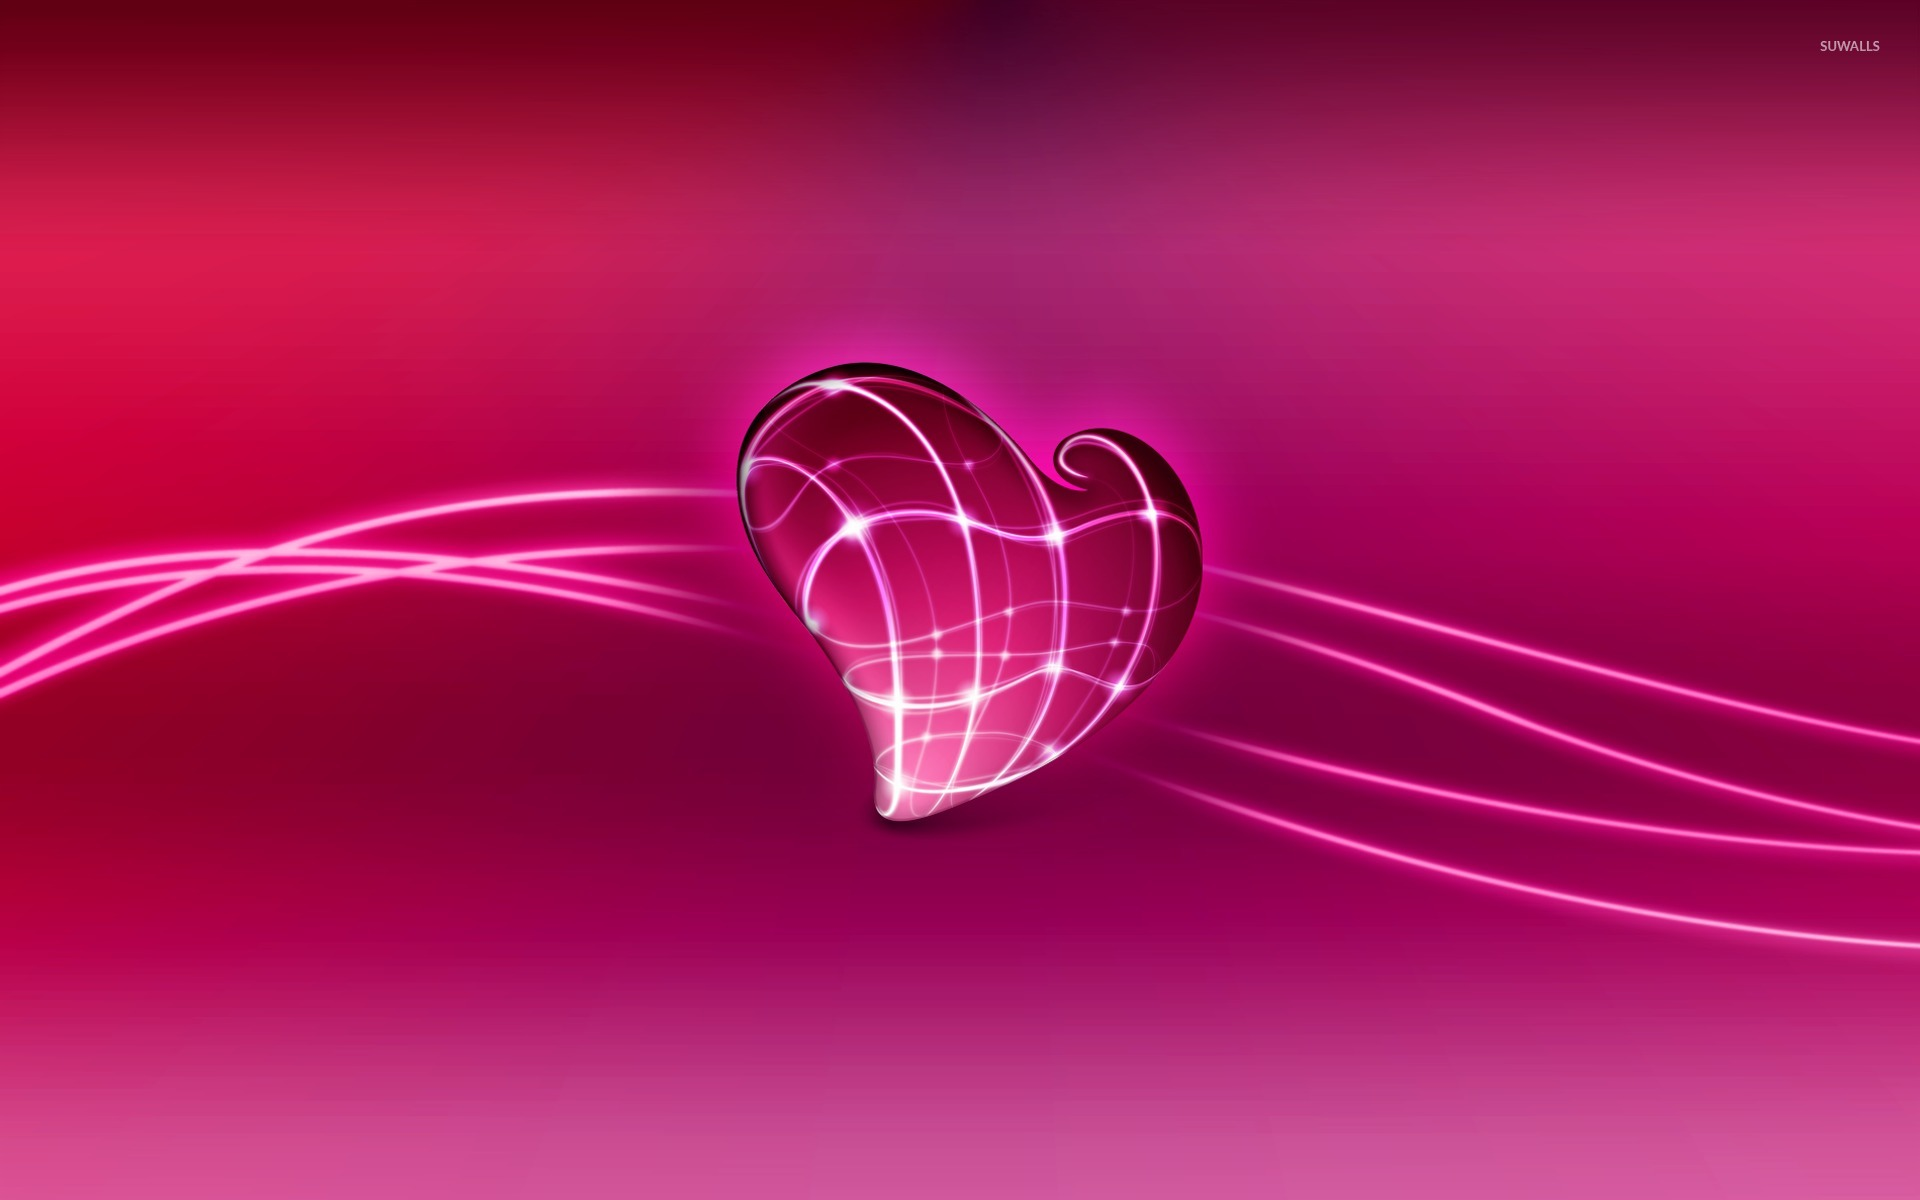 Pink Heart Wallpaper (66 Wallpapers)